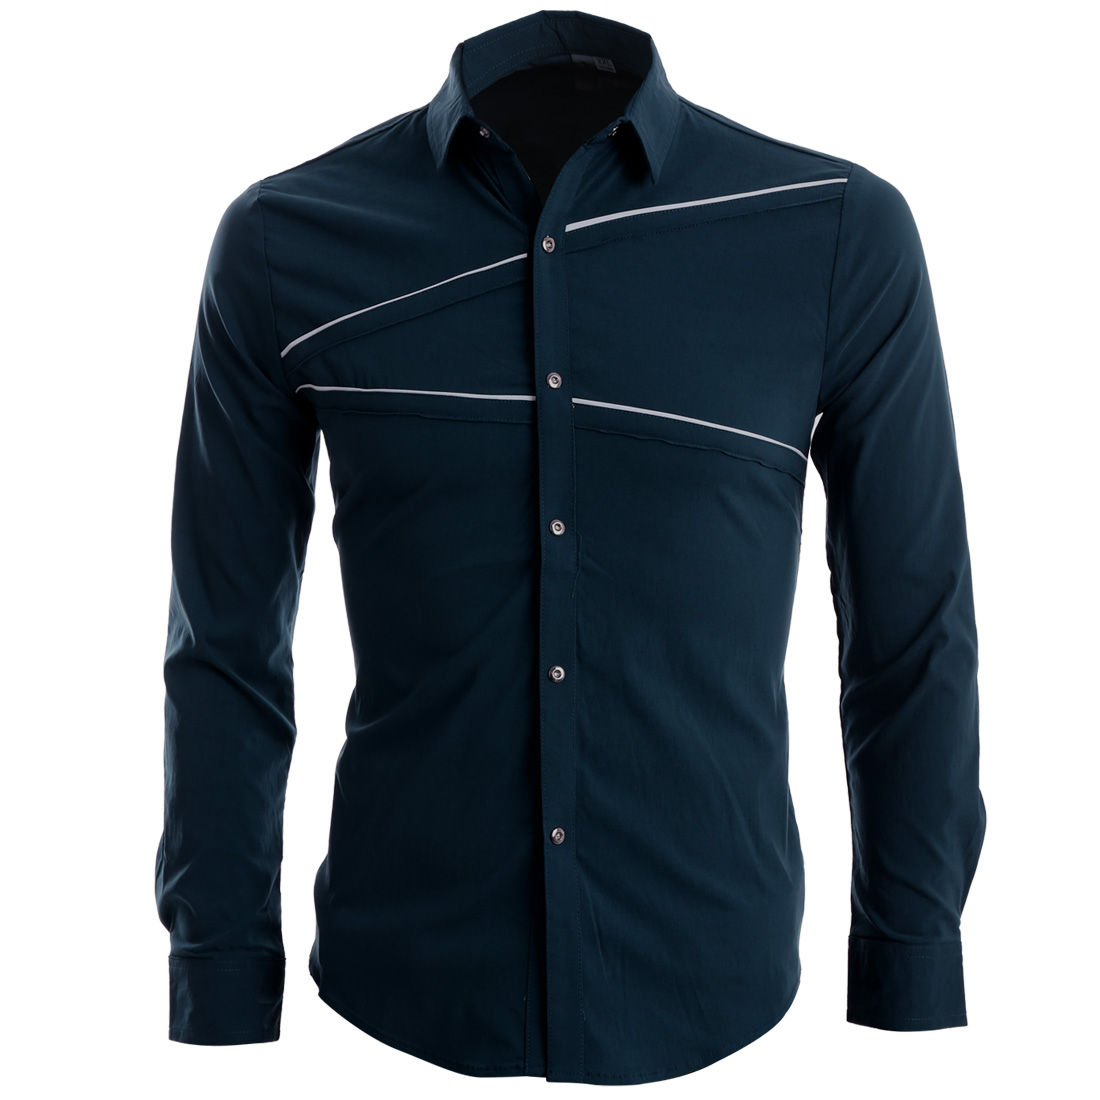 Men Snap Button Front Long Sleeve Round Hem Chic Shirt Navy Blue S